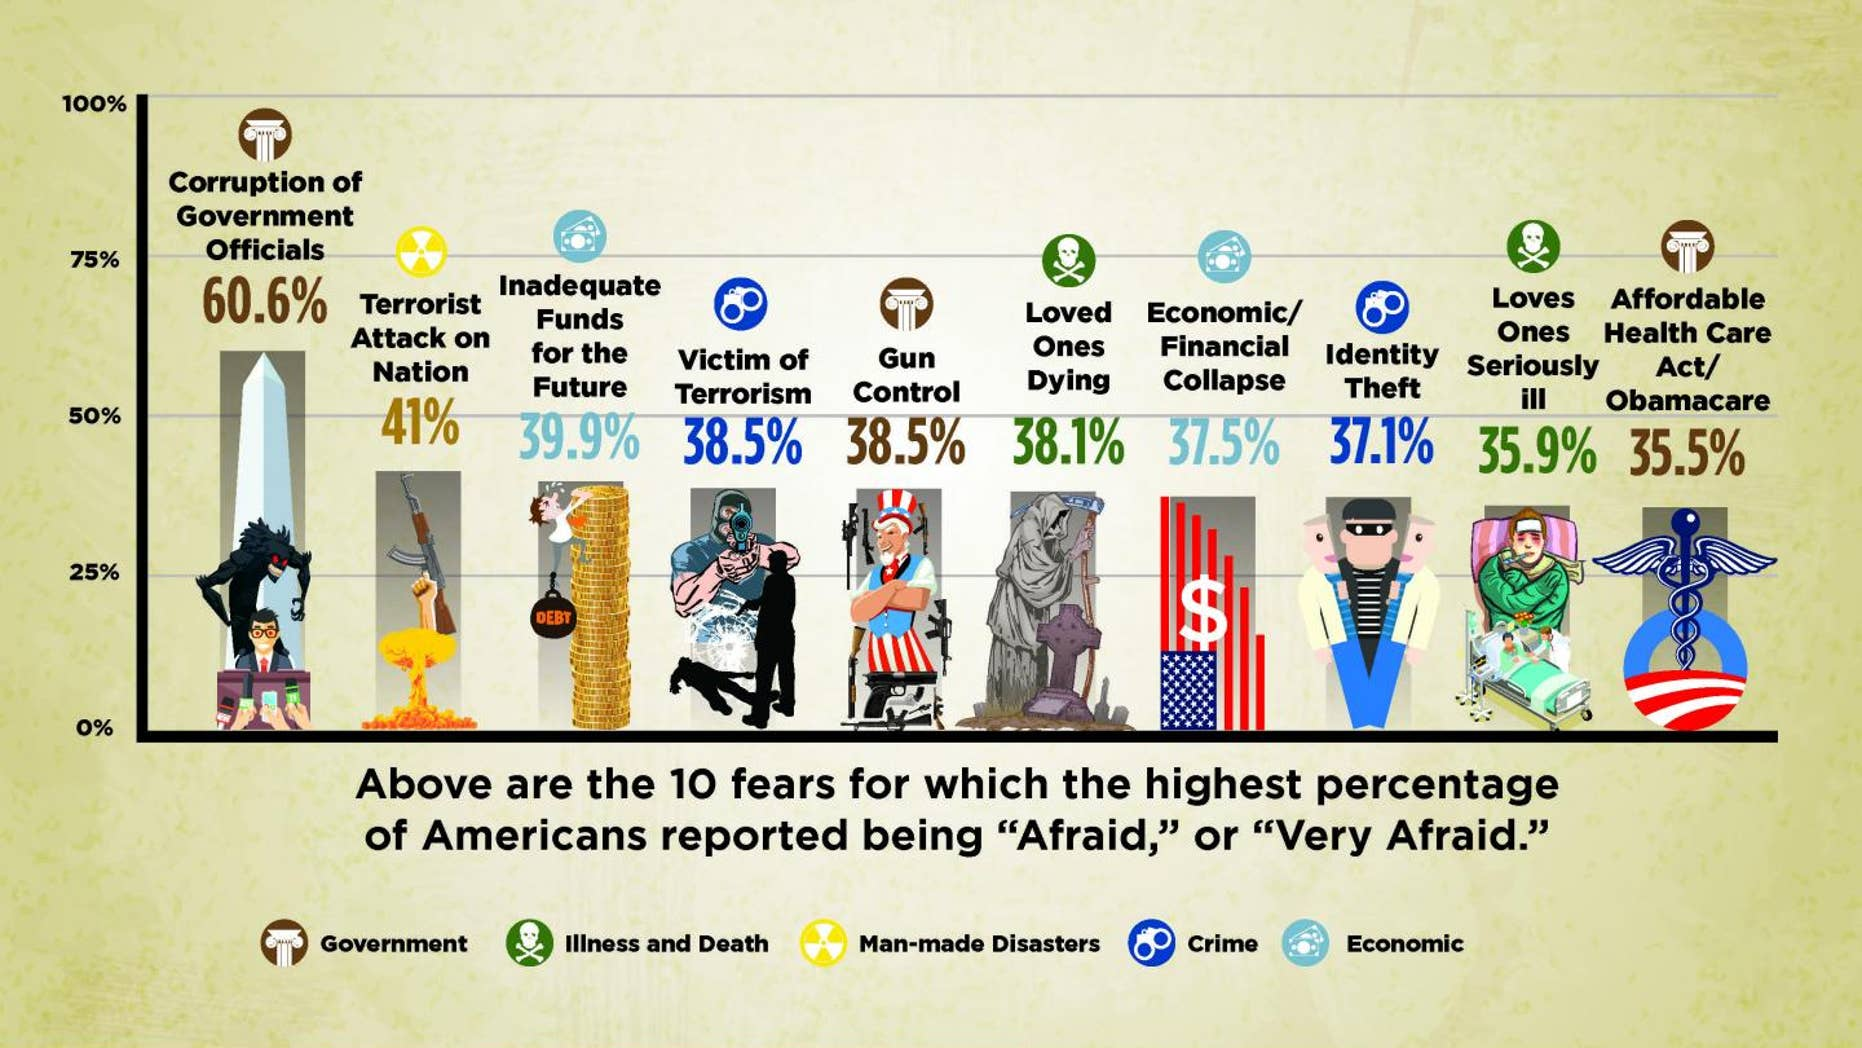 A 2016 survey of American fears found that Americans are most spooked by government corruptionn and terrorism, with canonical fears of ghosts and zombies much less common.